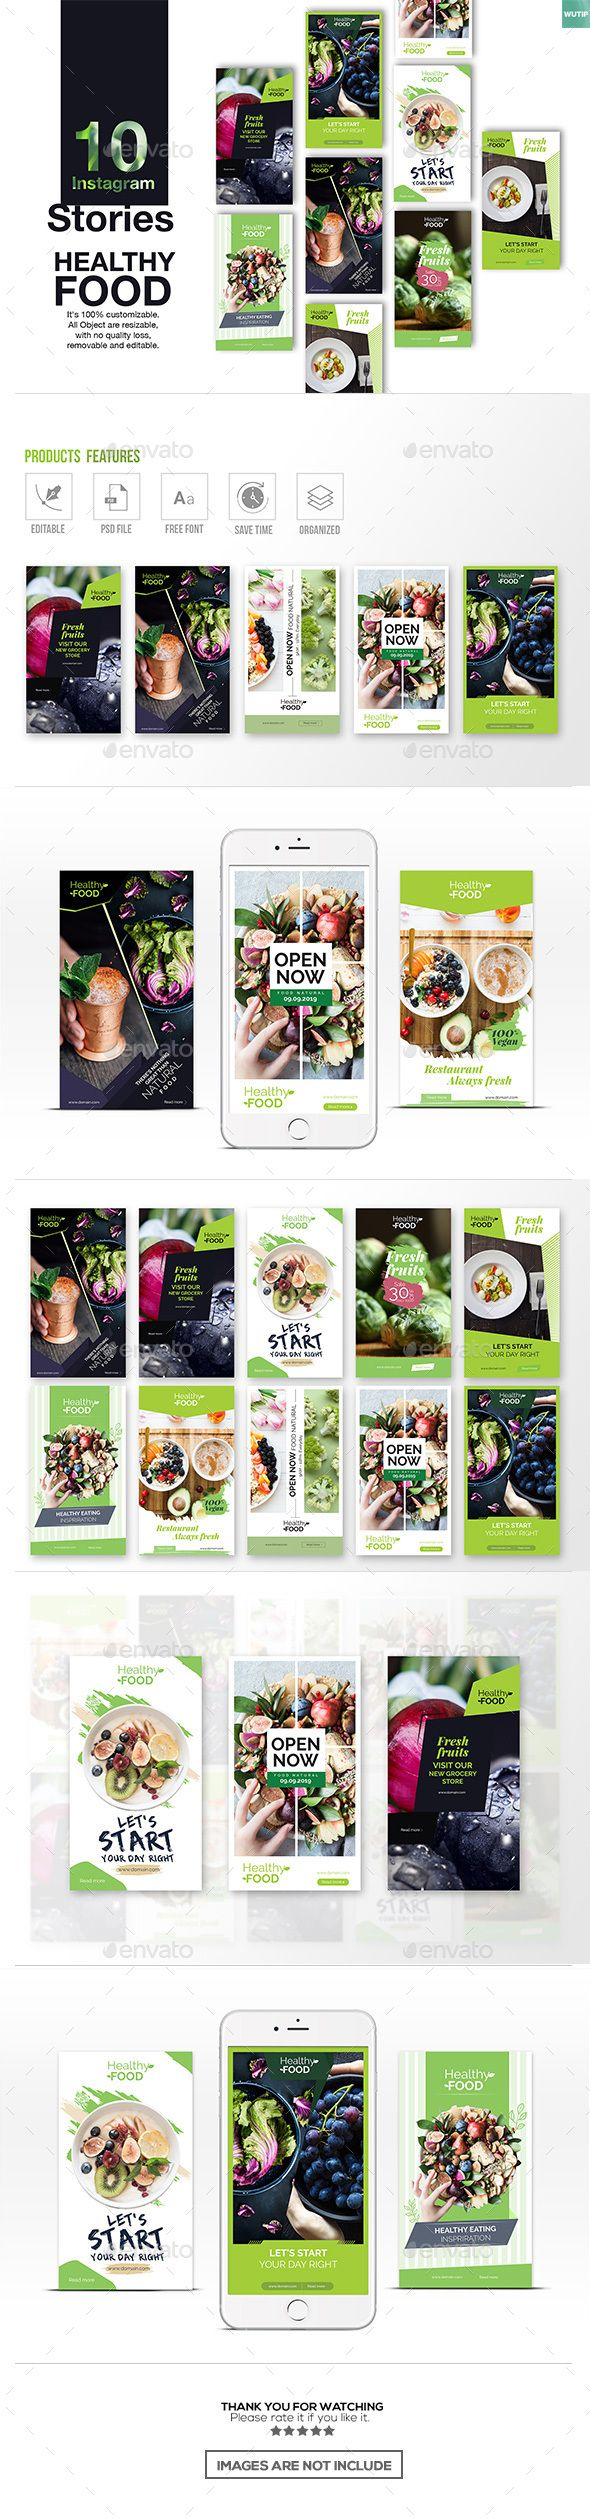 10 Instagram Stories  Healthy Food — Photoshop PSD #promotional #foodstuff • Available here ➝ https://graphicriver.net/item/10-instagram-stories-healthy-food/21010981?ref=pxcr